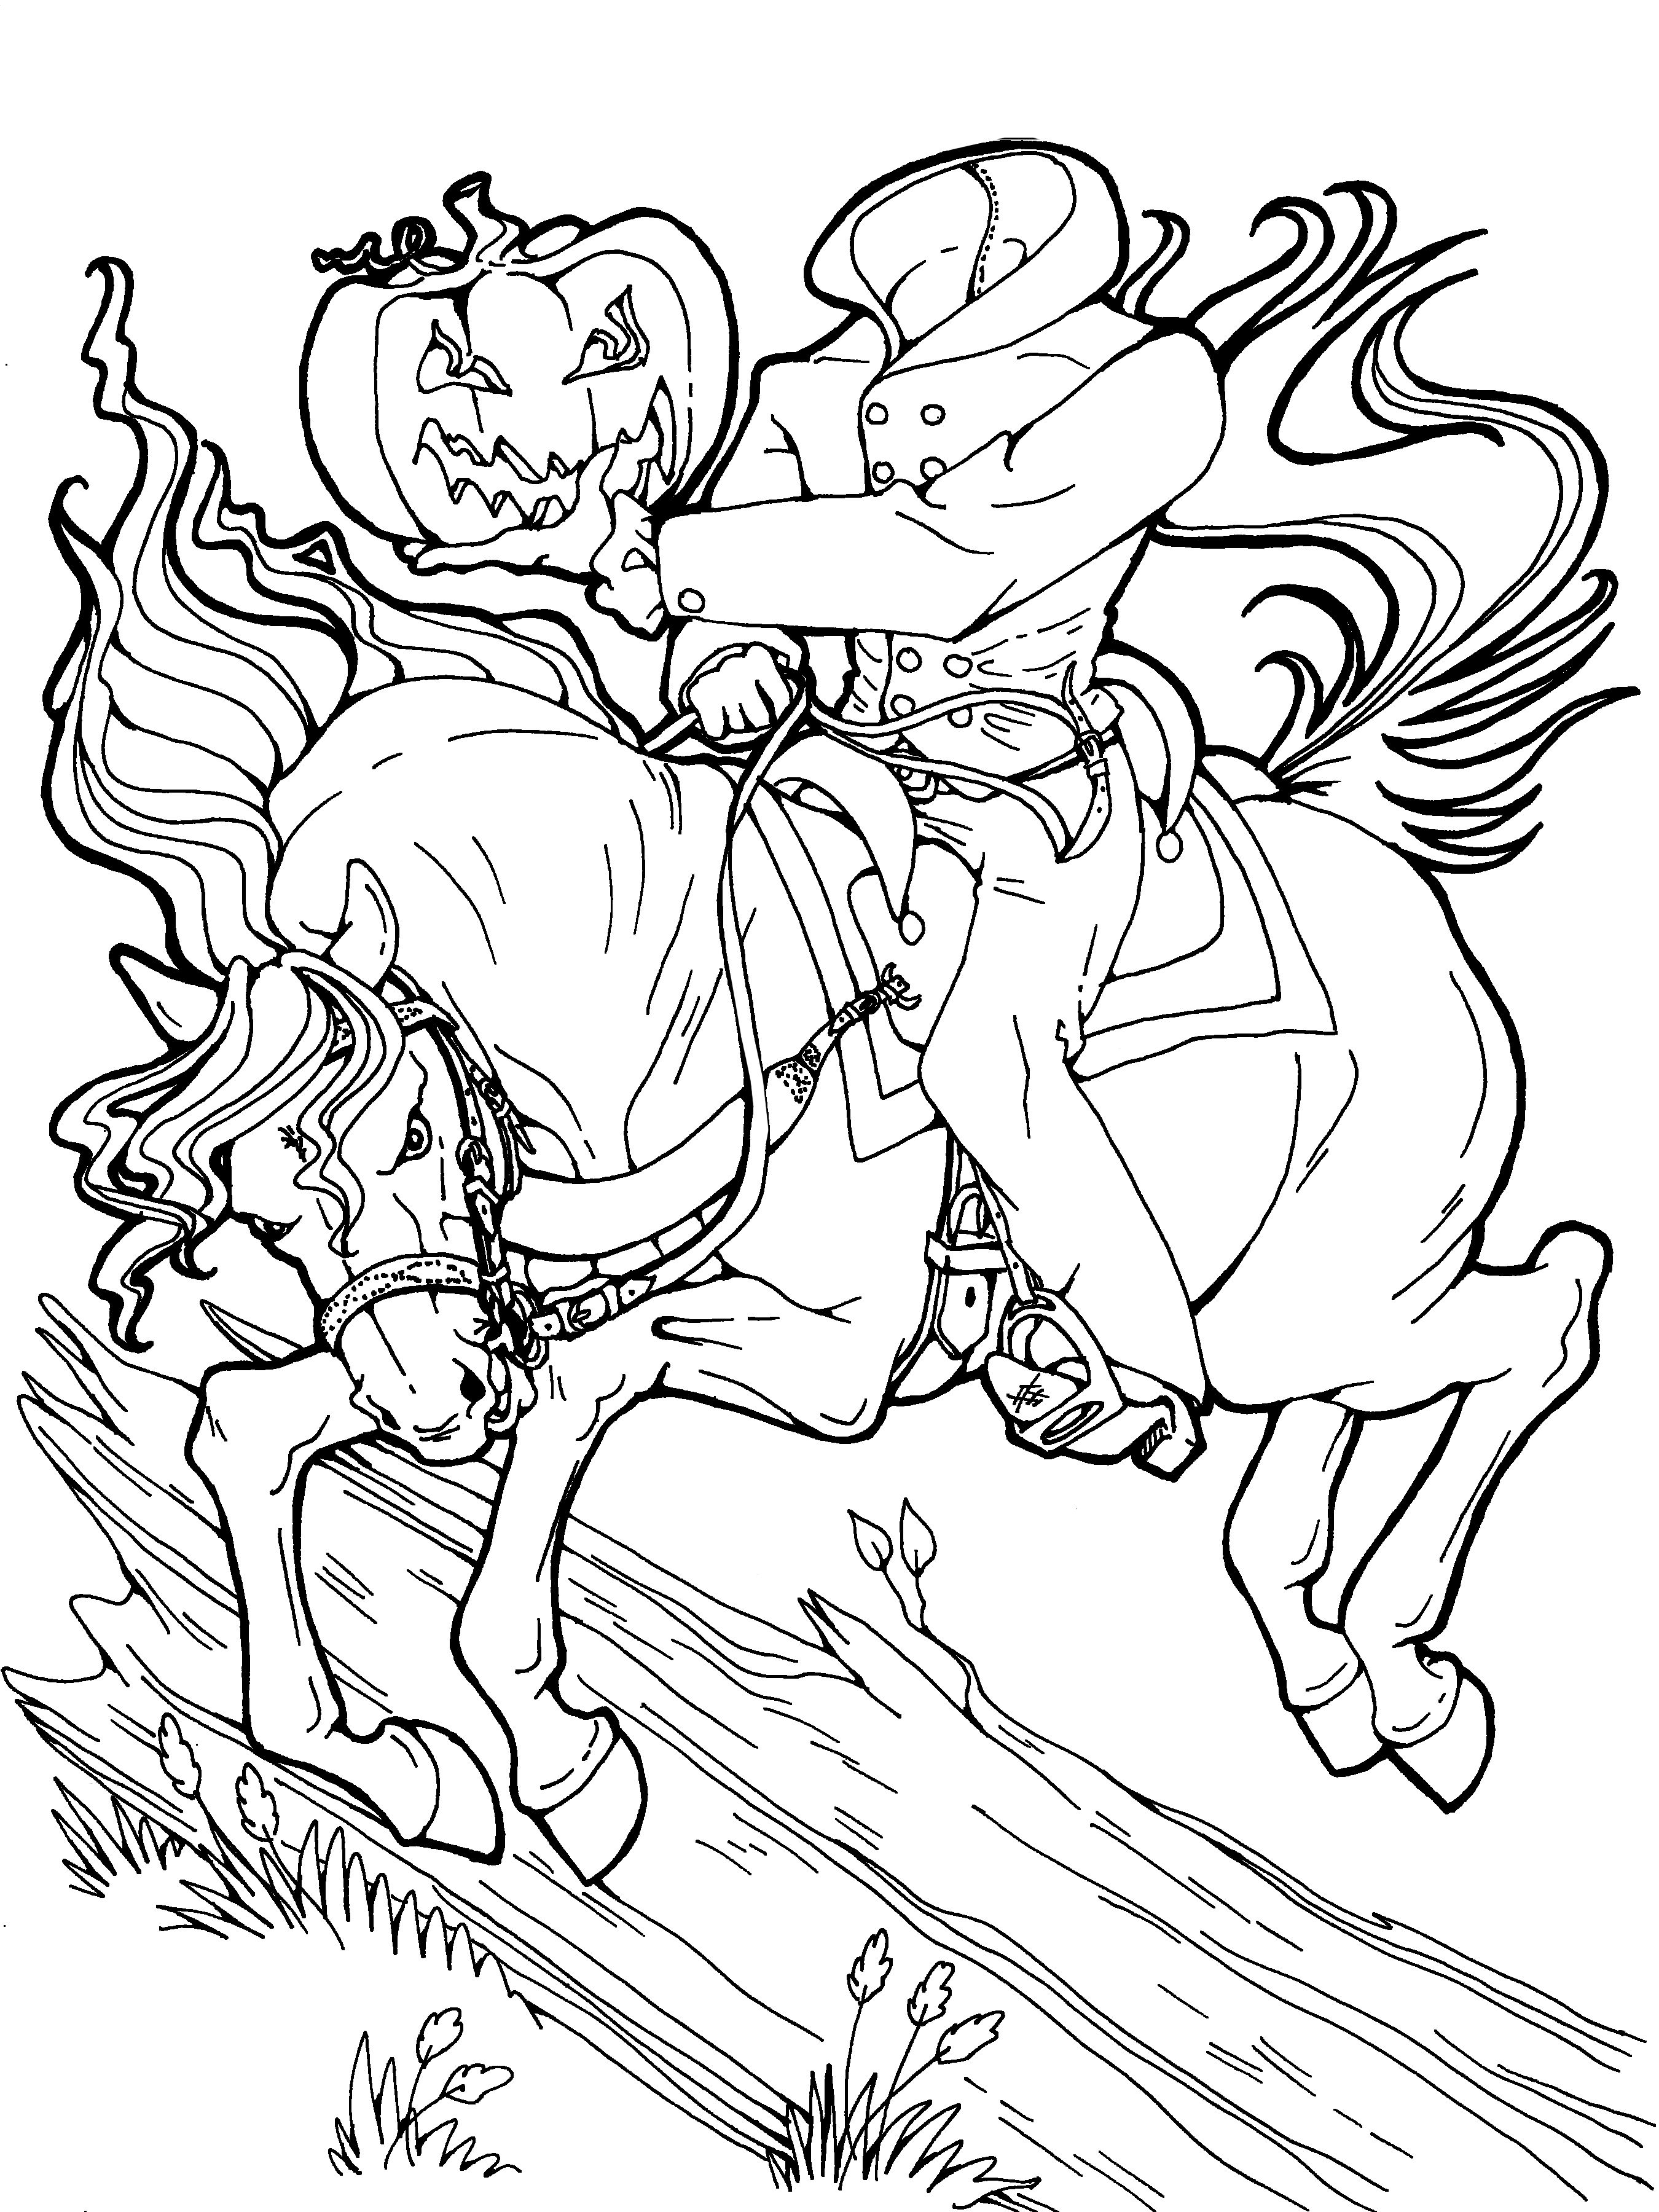 Headless Horseman Coloring Pages For Kids - Headless